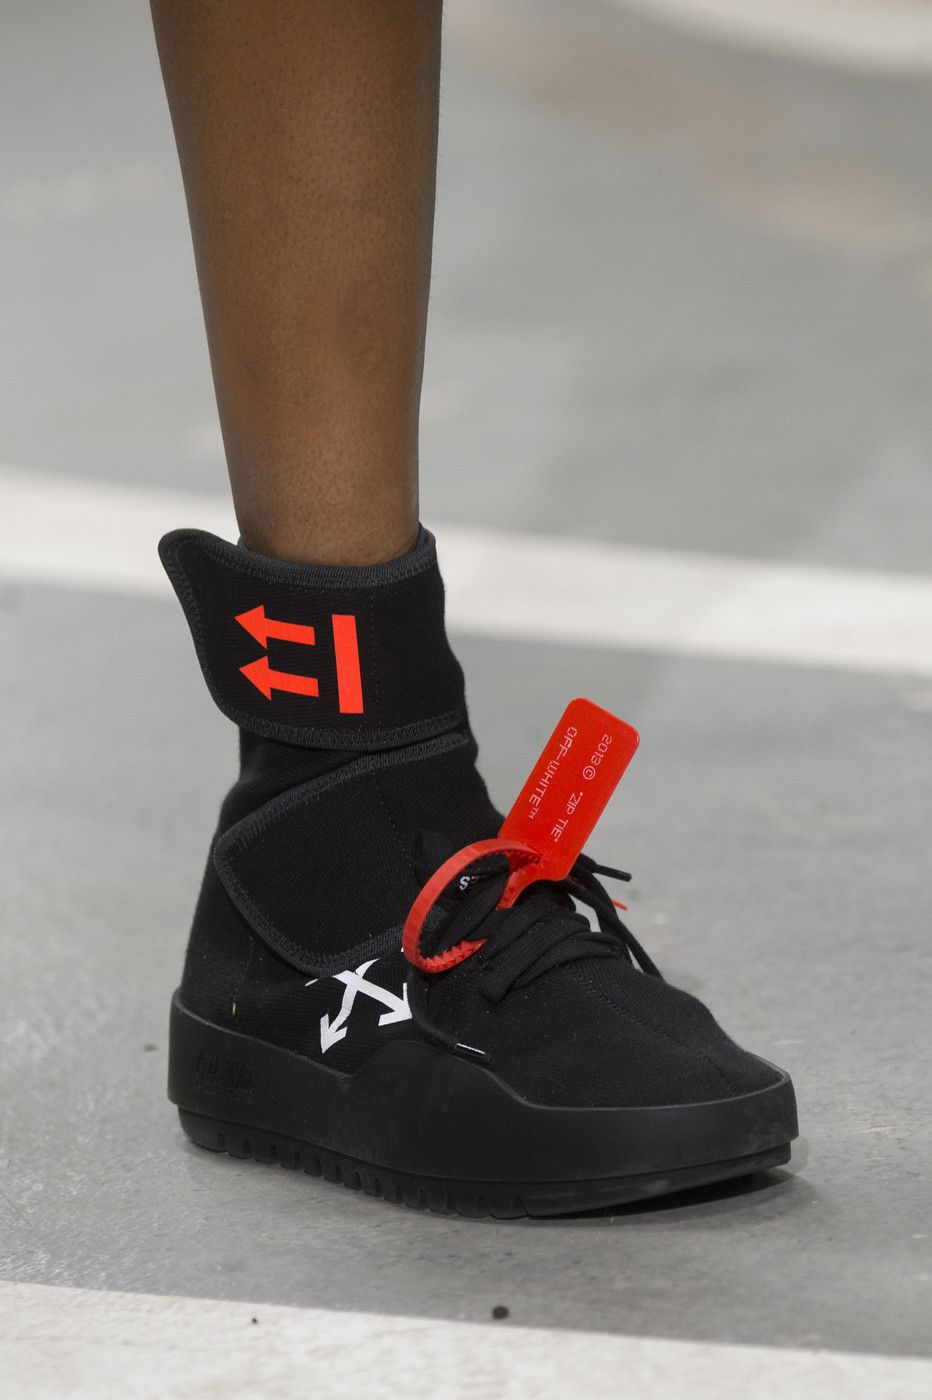 Off-White at Paris Fashion Week Spring 2019 | Shoes with